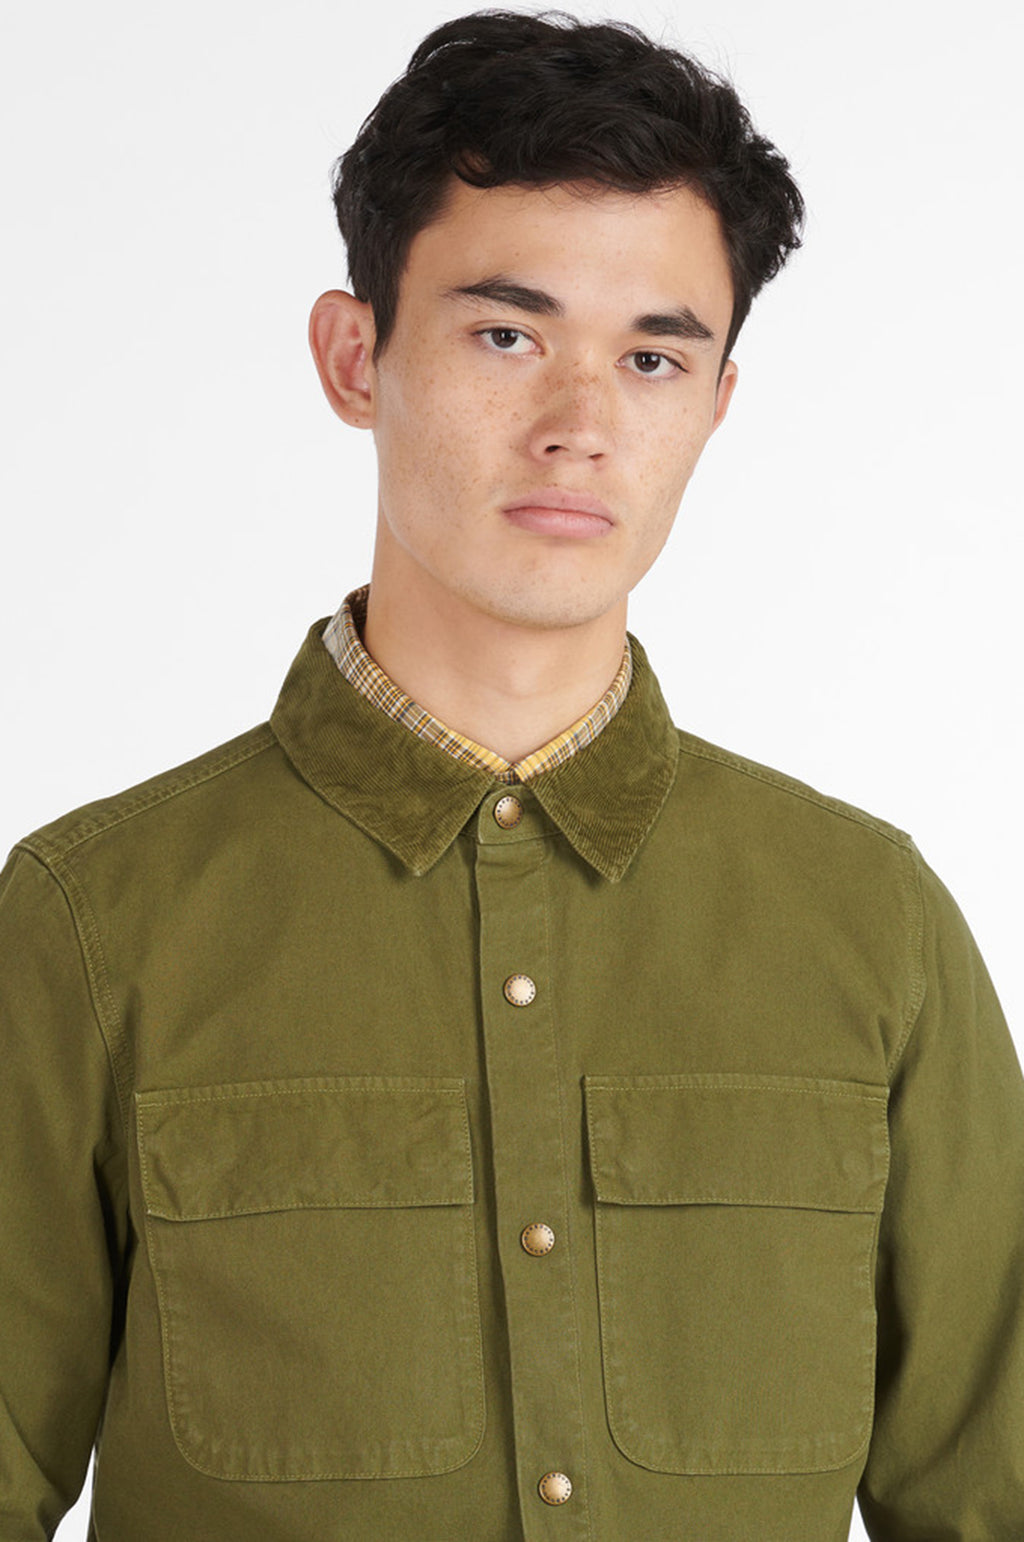 Nico Overshirt in Olive